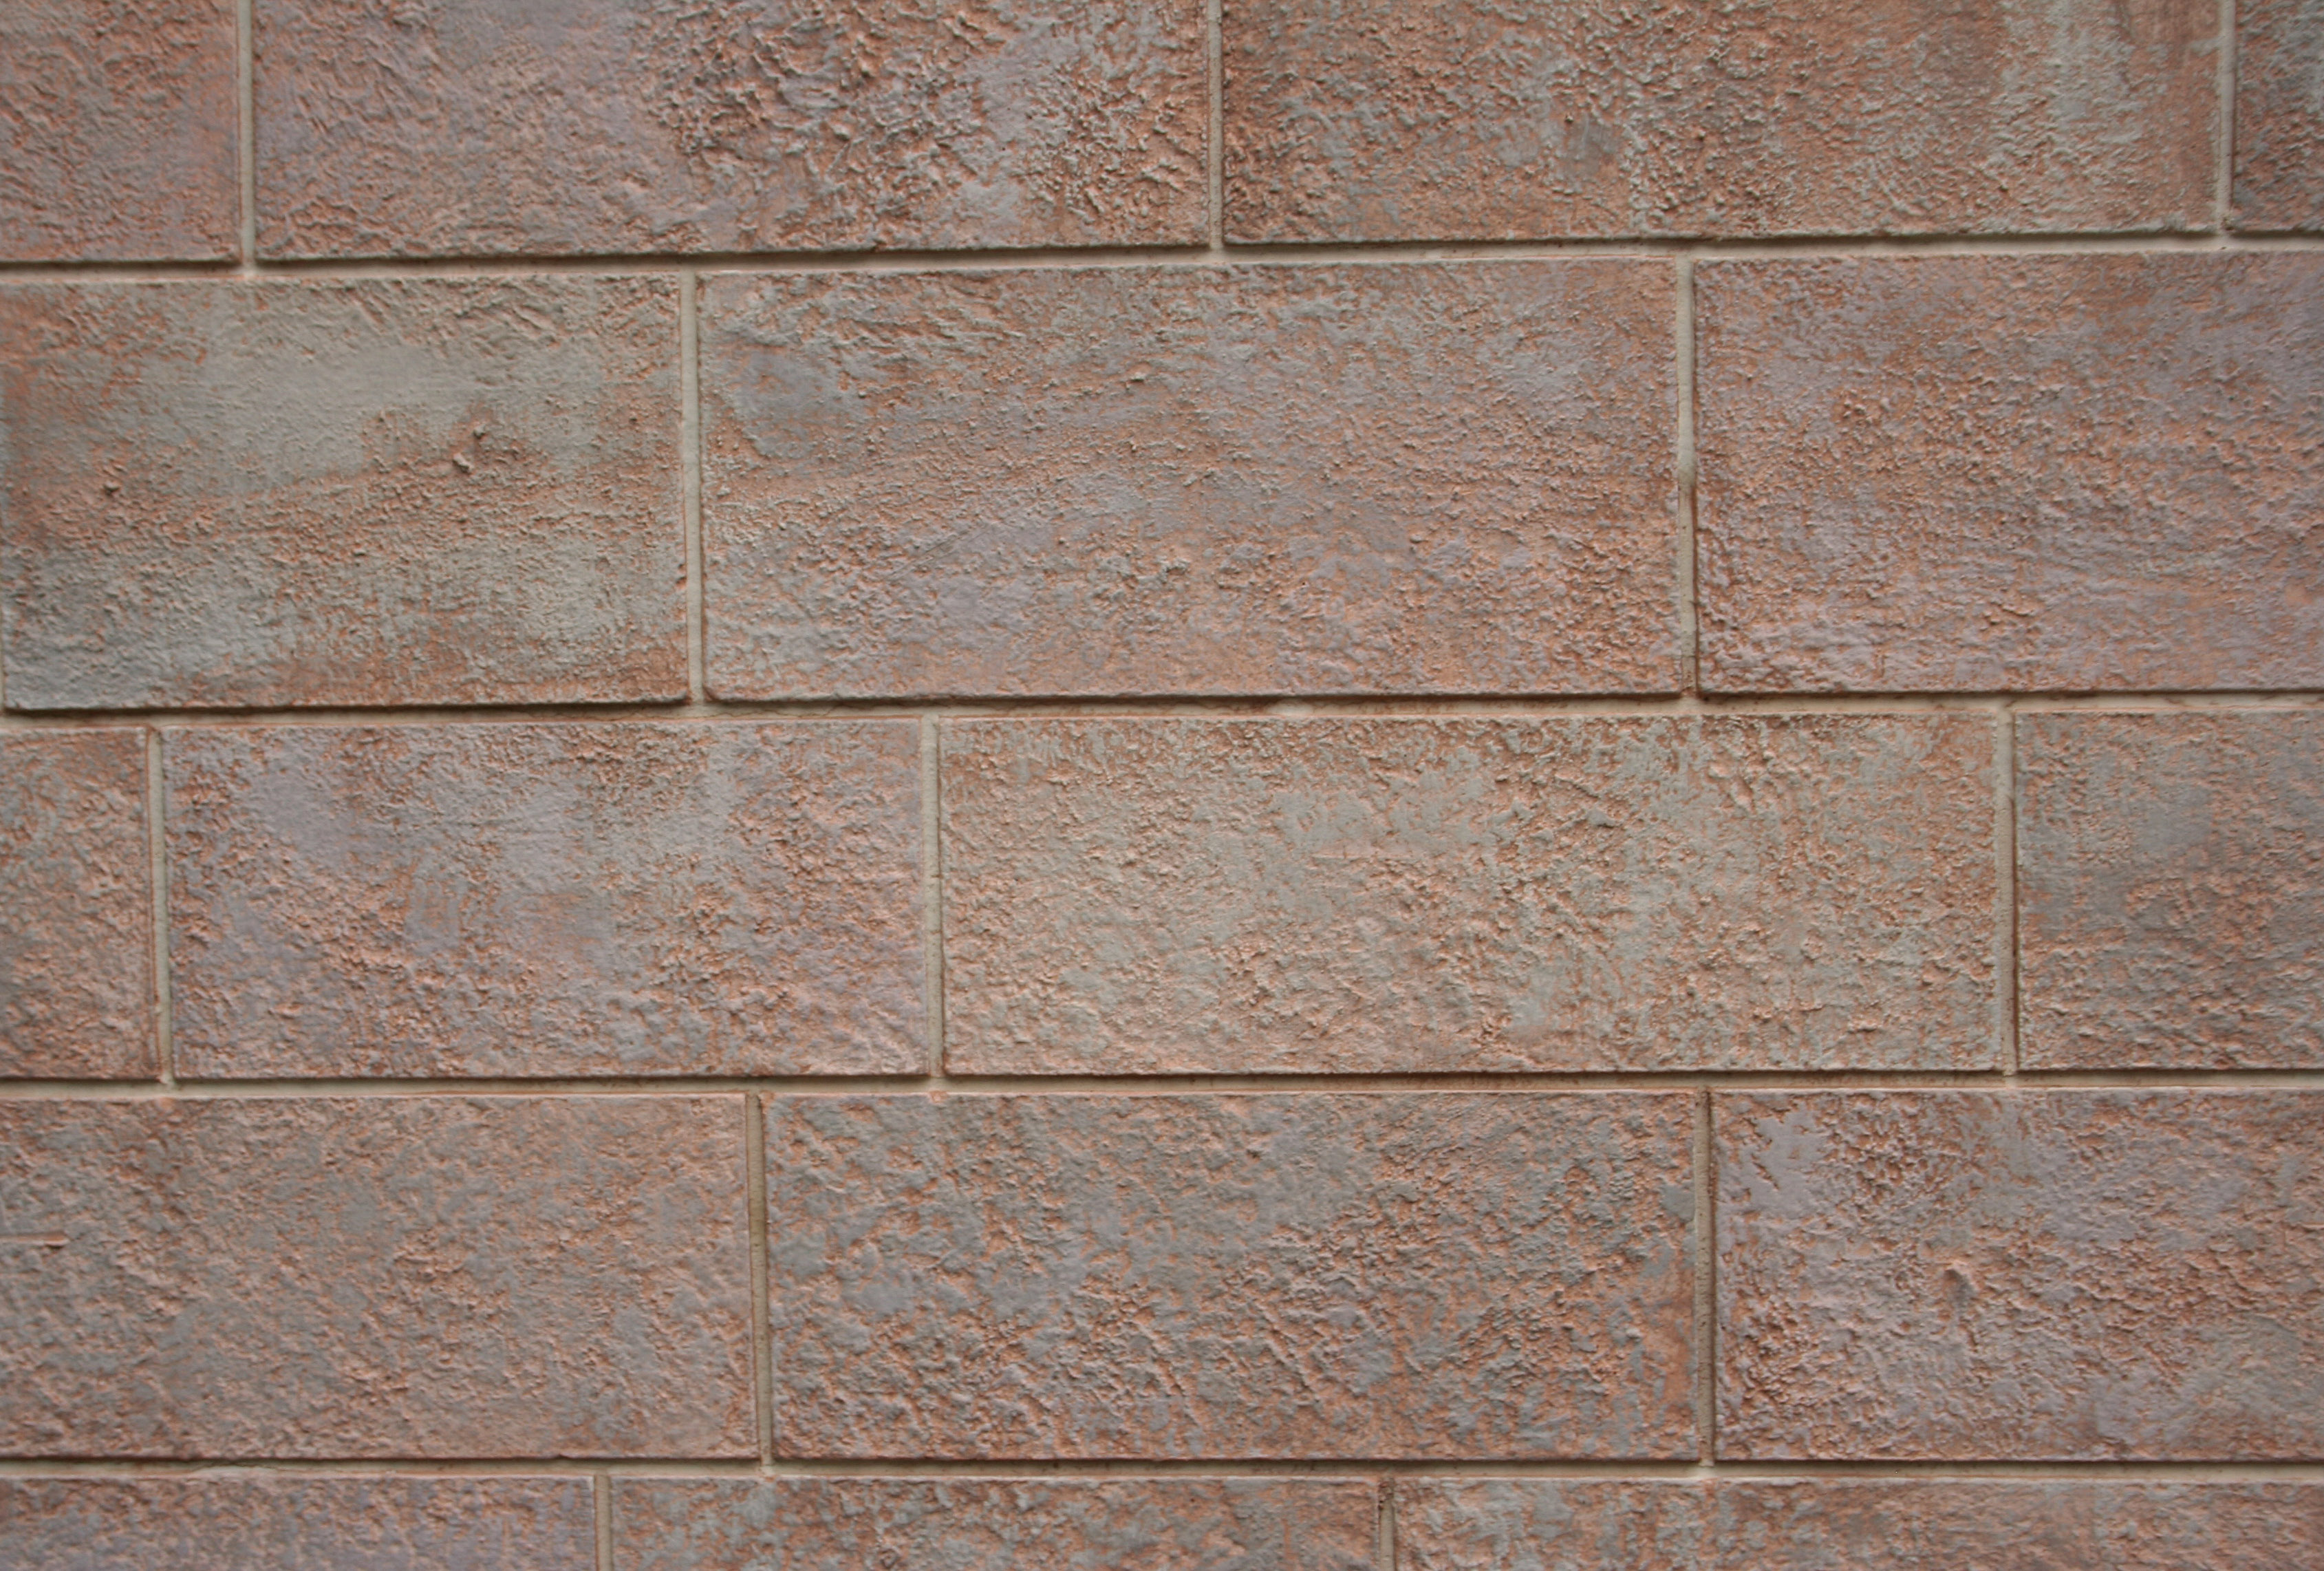 Texturex Clean Light Brick Wall rough Paint Stone Texture TextureX